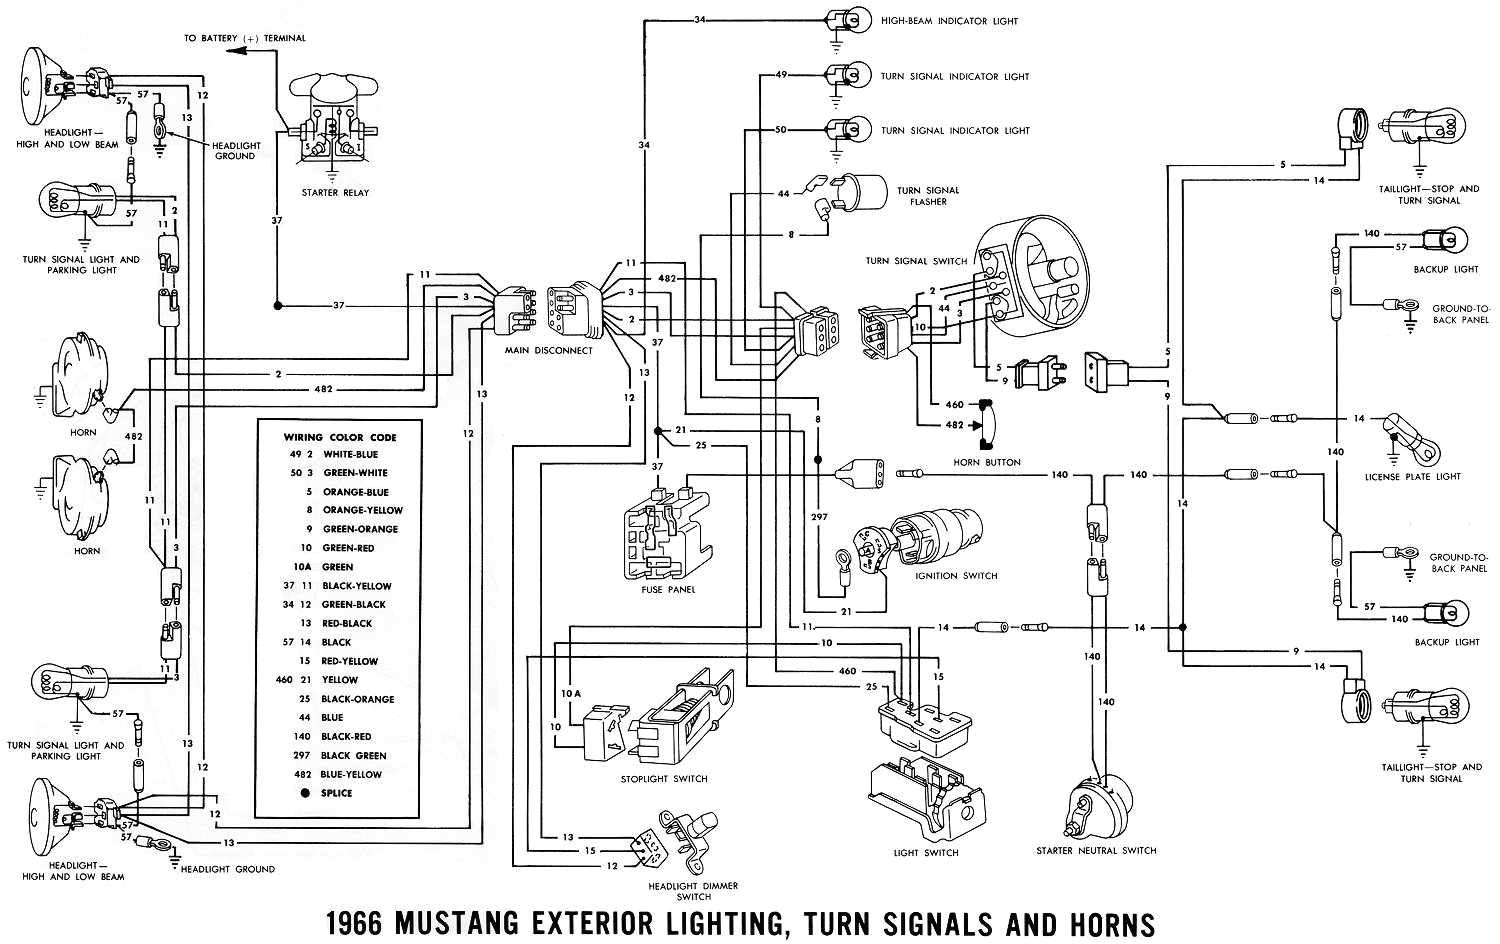 2011 mustang wiring diagram wiring diagram paper 2011 mustang wiring diagram wiring diagram week 2011 mustang